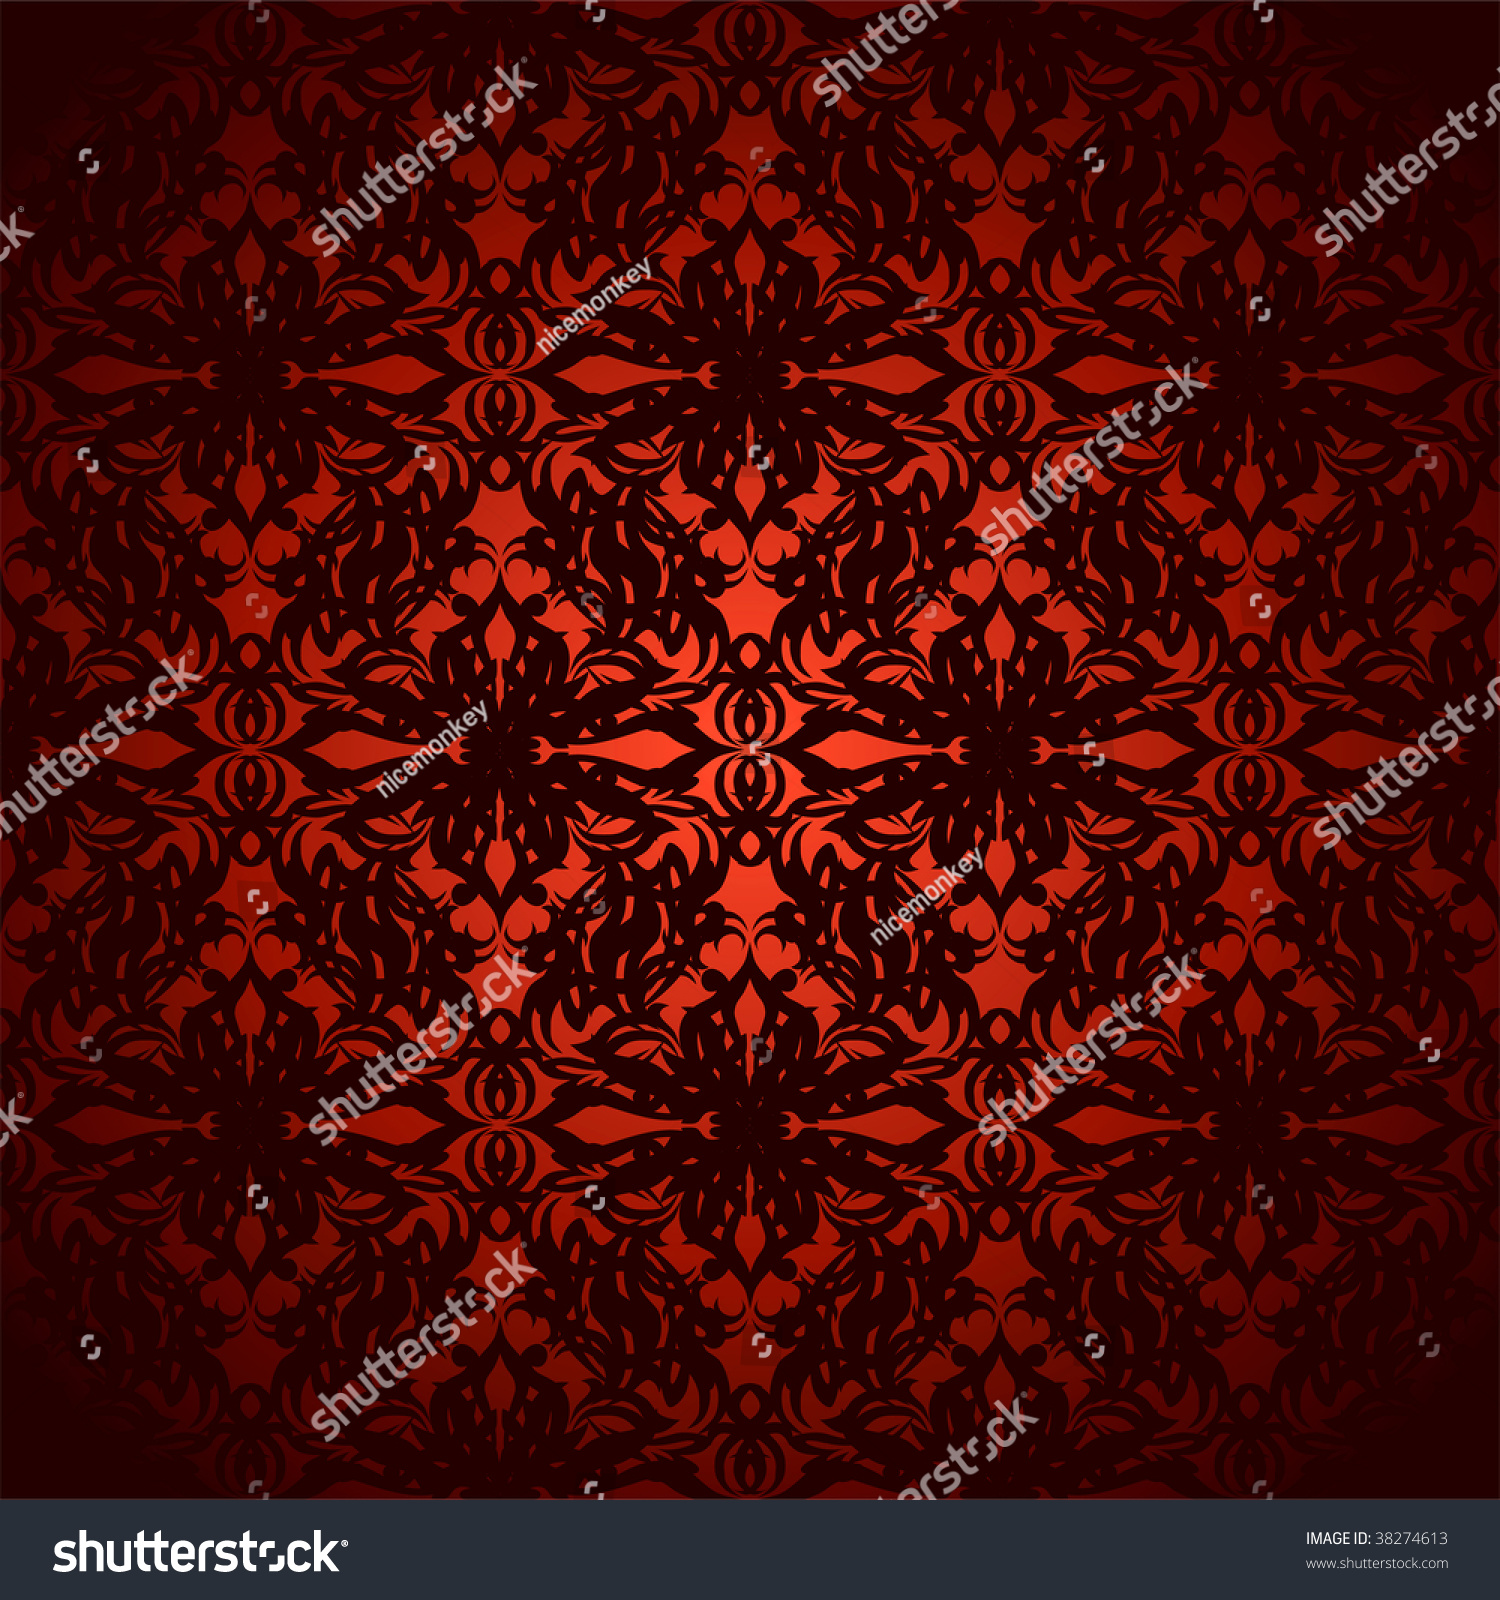 Bright Red And Black Abstract Floral Inspired Wallpaper